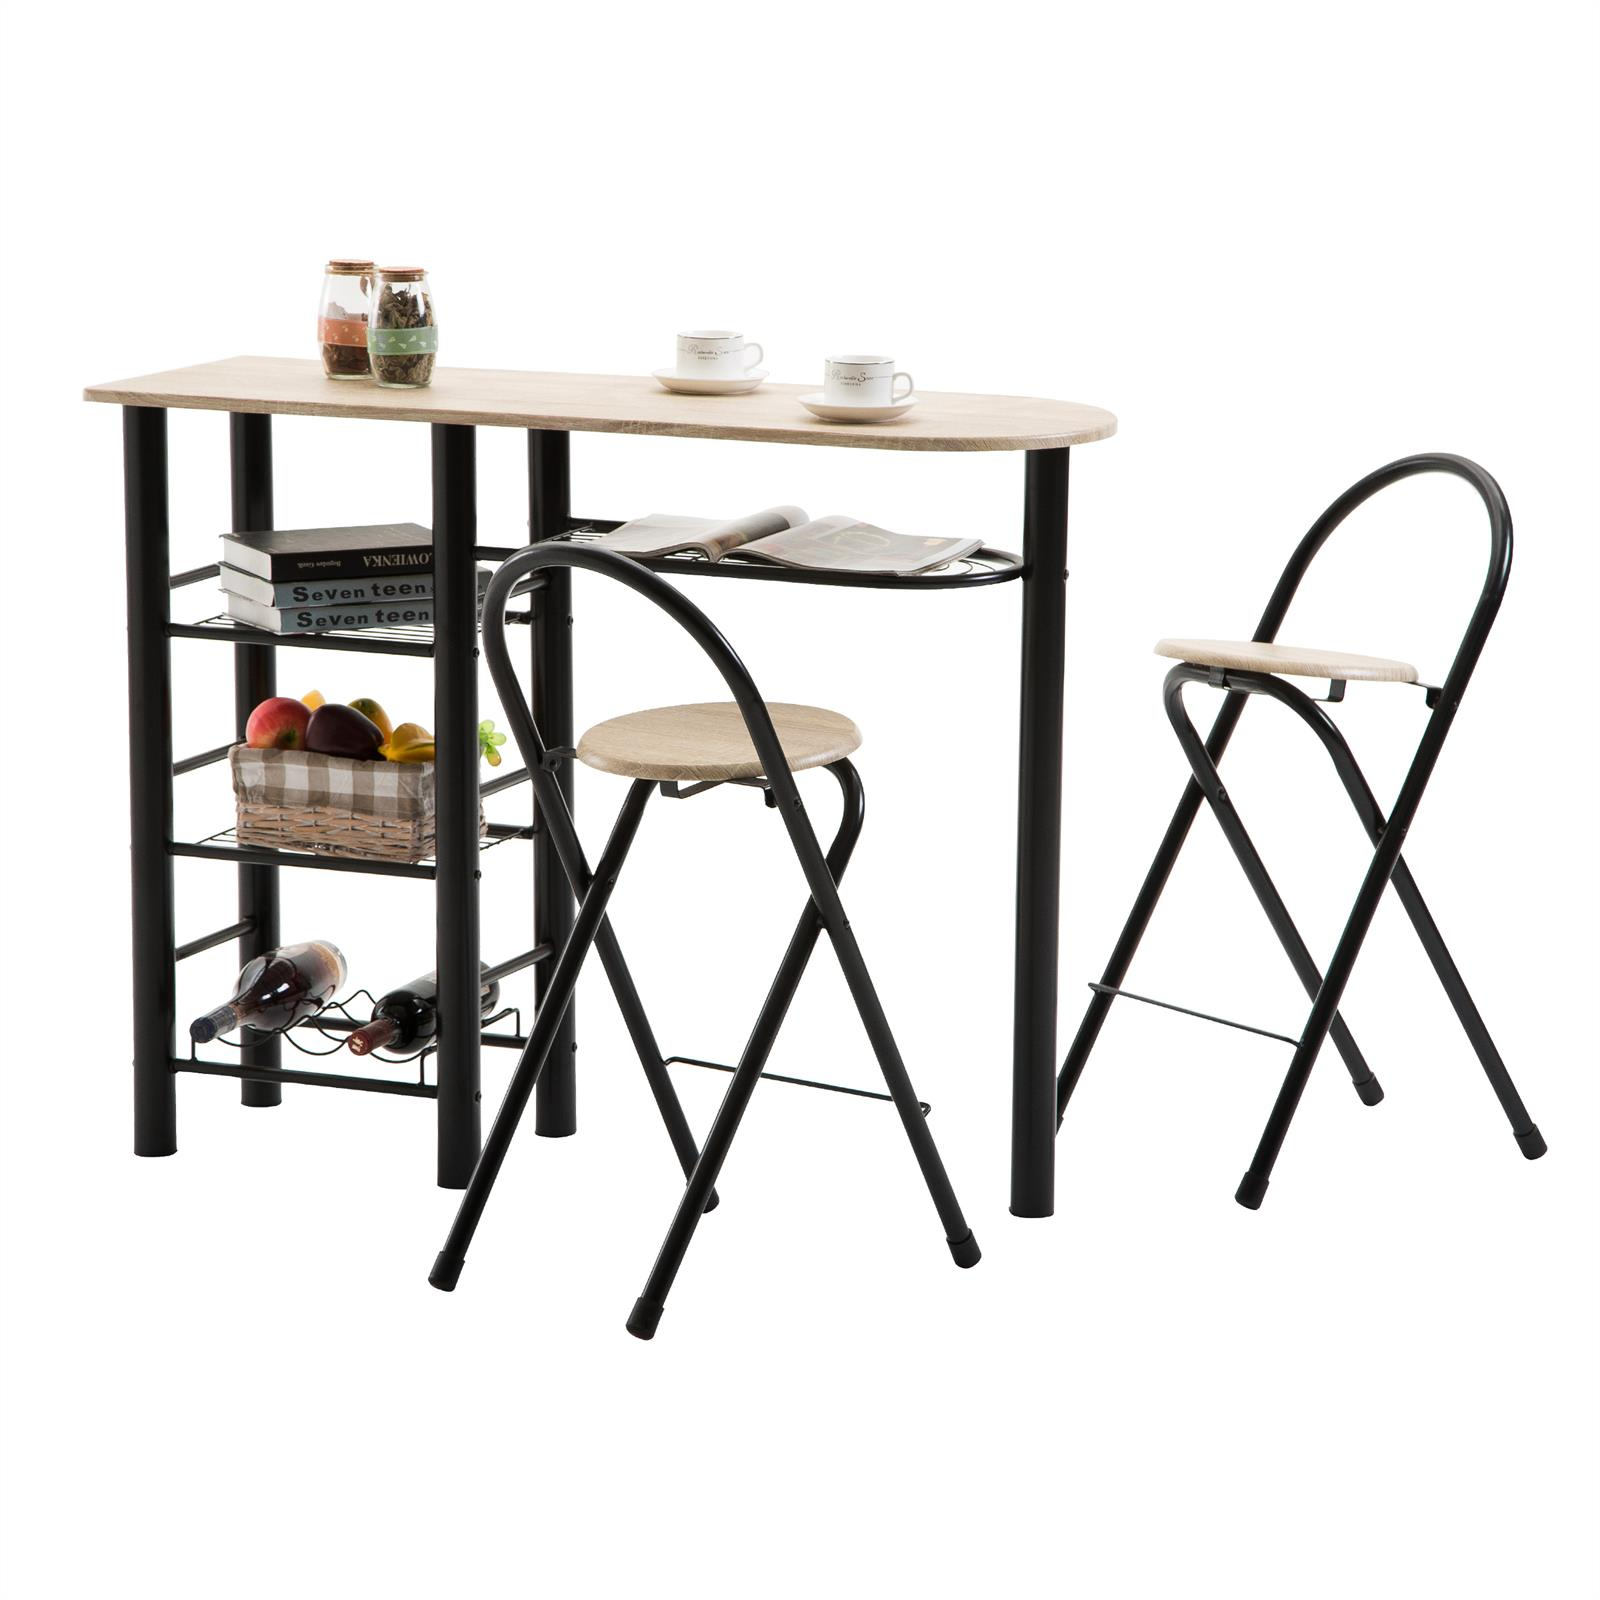 ensemble table haute de bar et 2 chaises style d cor ch ne sonoma et noir mobil meubles. Black Bedroom Furniture Sets. Home Design Ideas